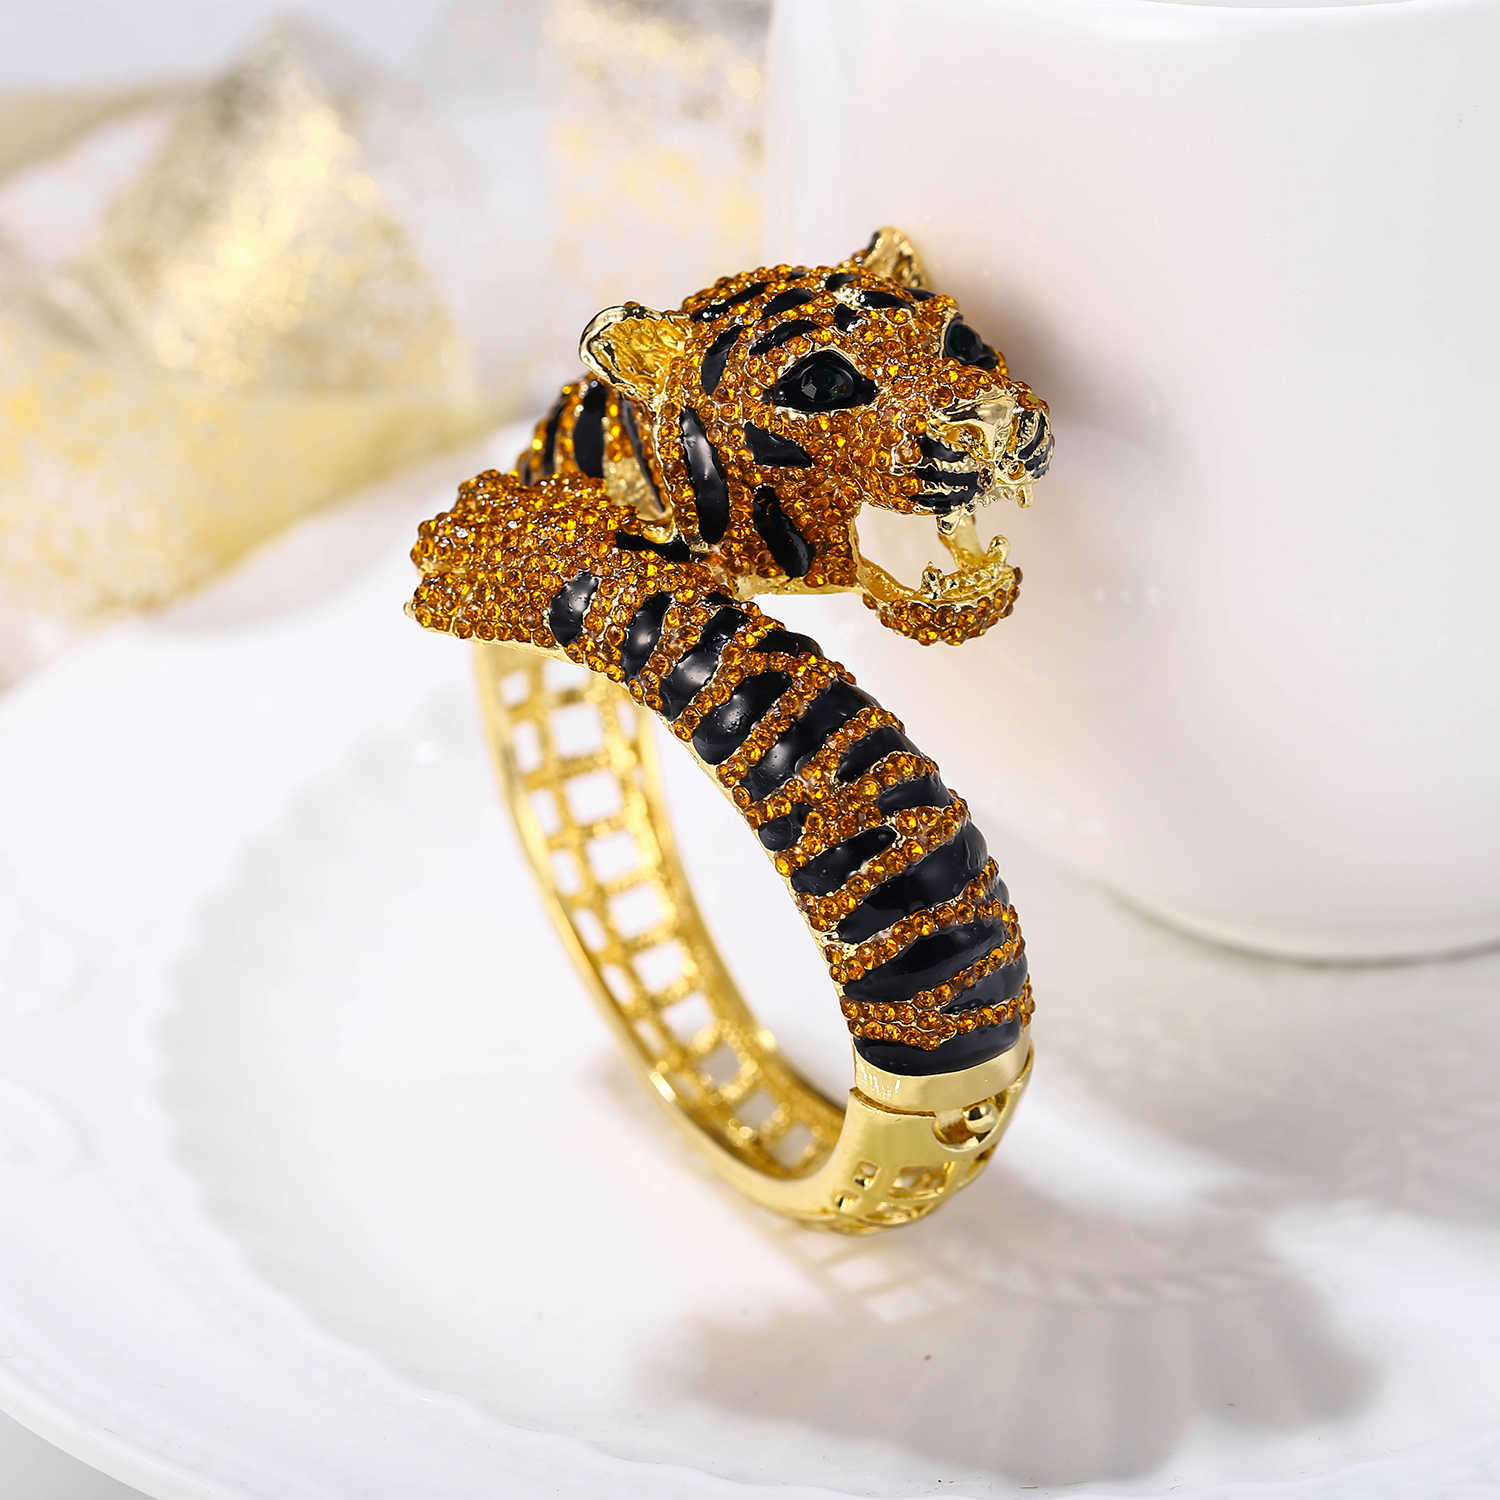 Tuliper браслет Bangle Bracelet For Women Tiger Animal Brown Enamel Crystal Bracelet Party Jewelry браслеты женские